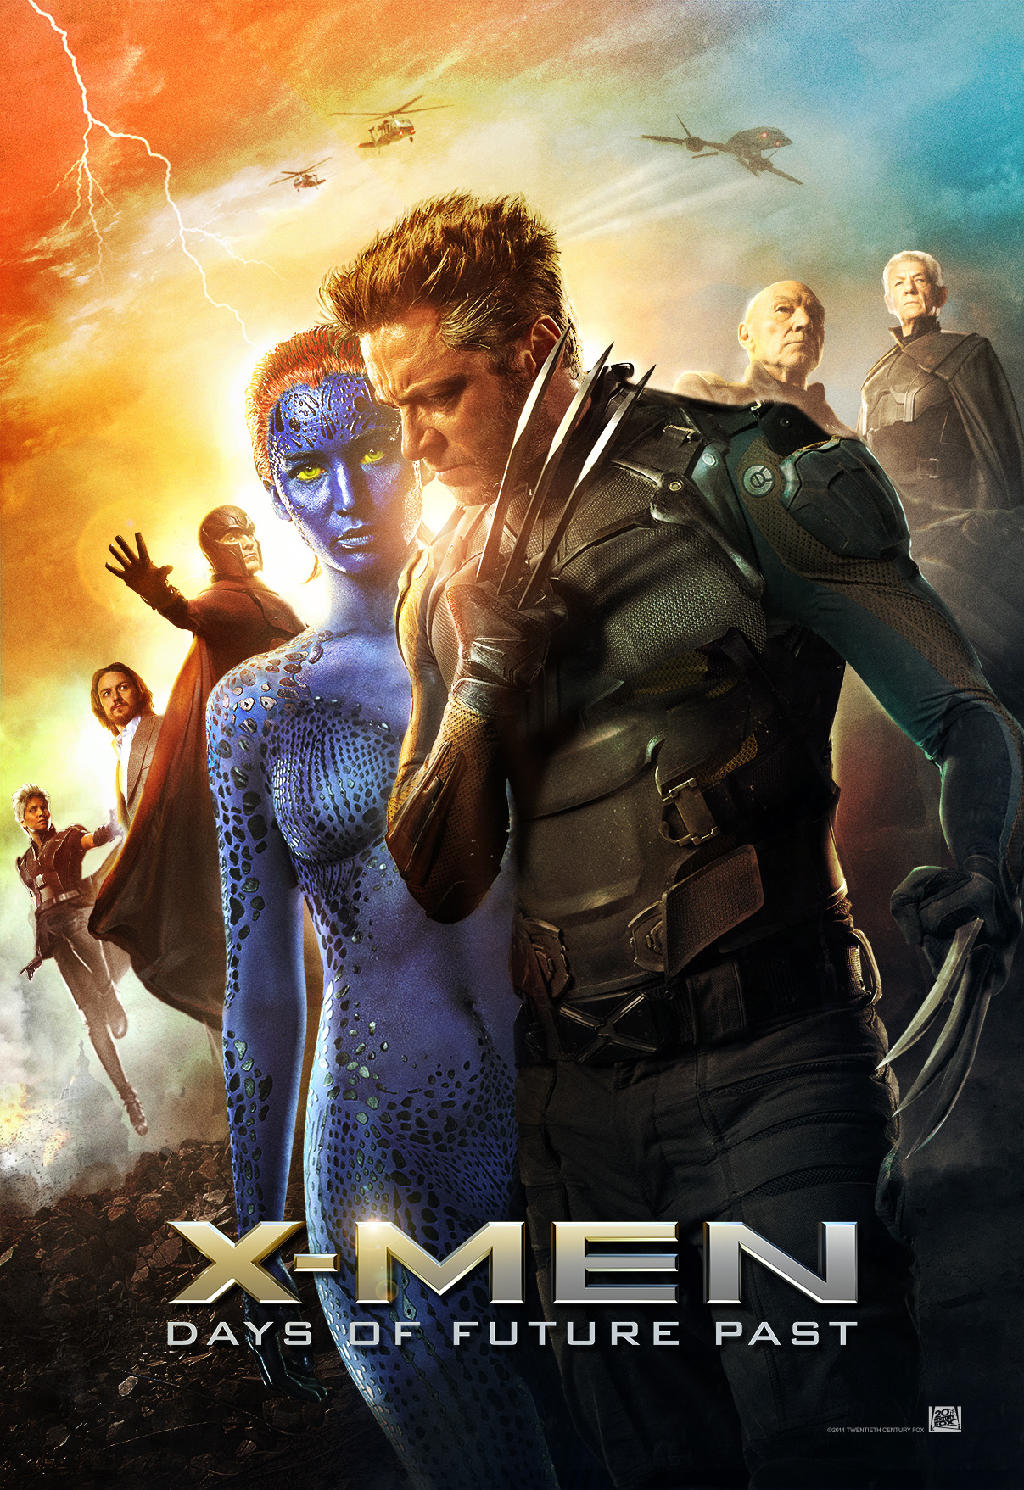 Free Download Most Viewed X Men Days Of Future Past Wallpapers 4k Wallpapers 1024x1490 For Your Desktop Mobile Tablet Explore 49 Days Of Future Past Desktop Poster Wallpapers Days